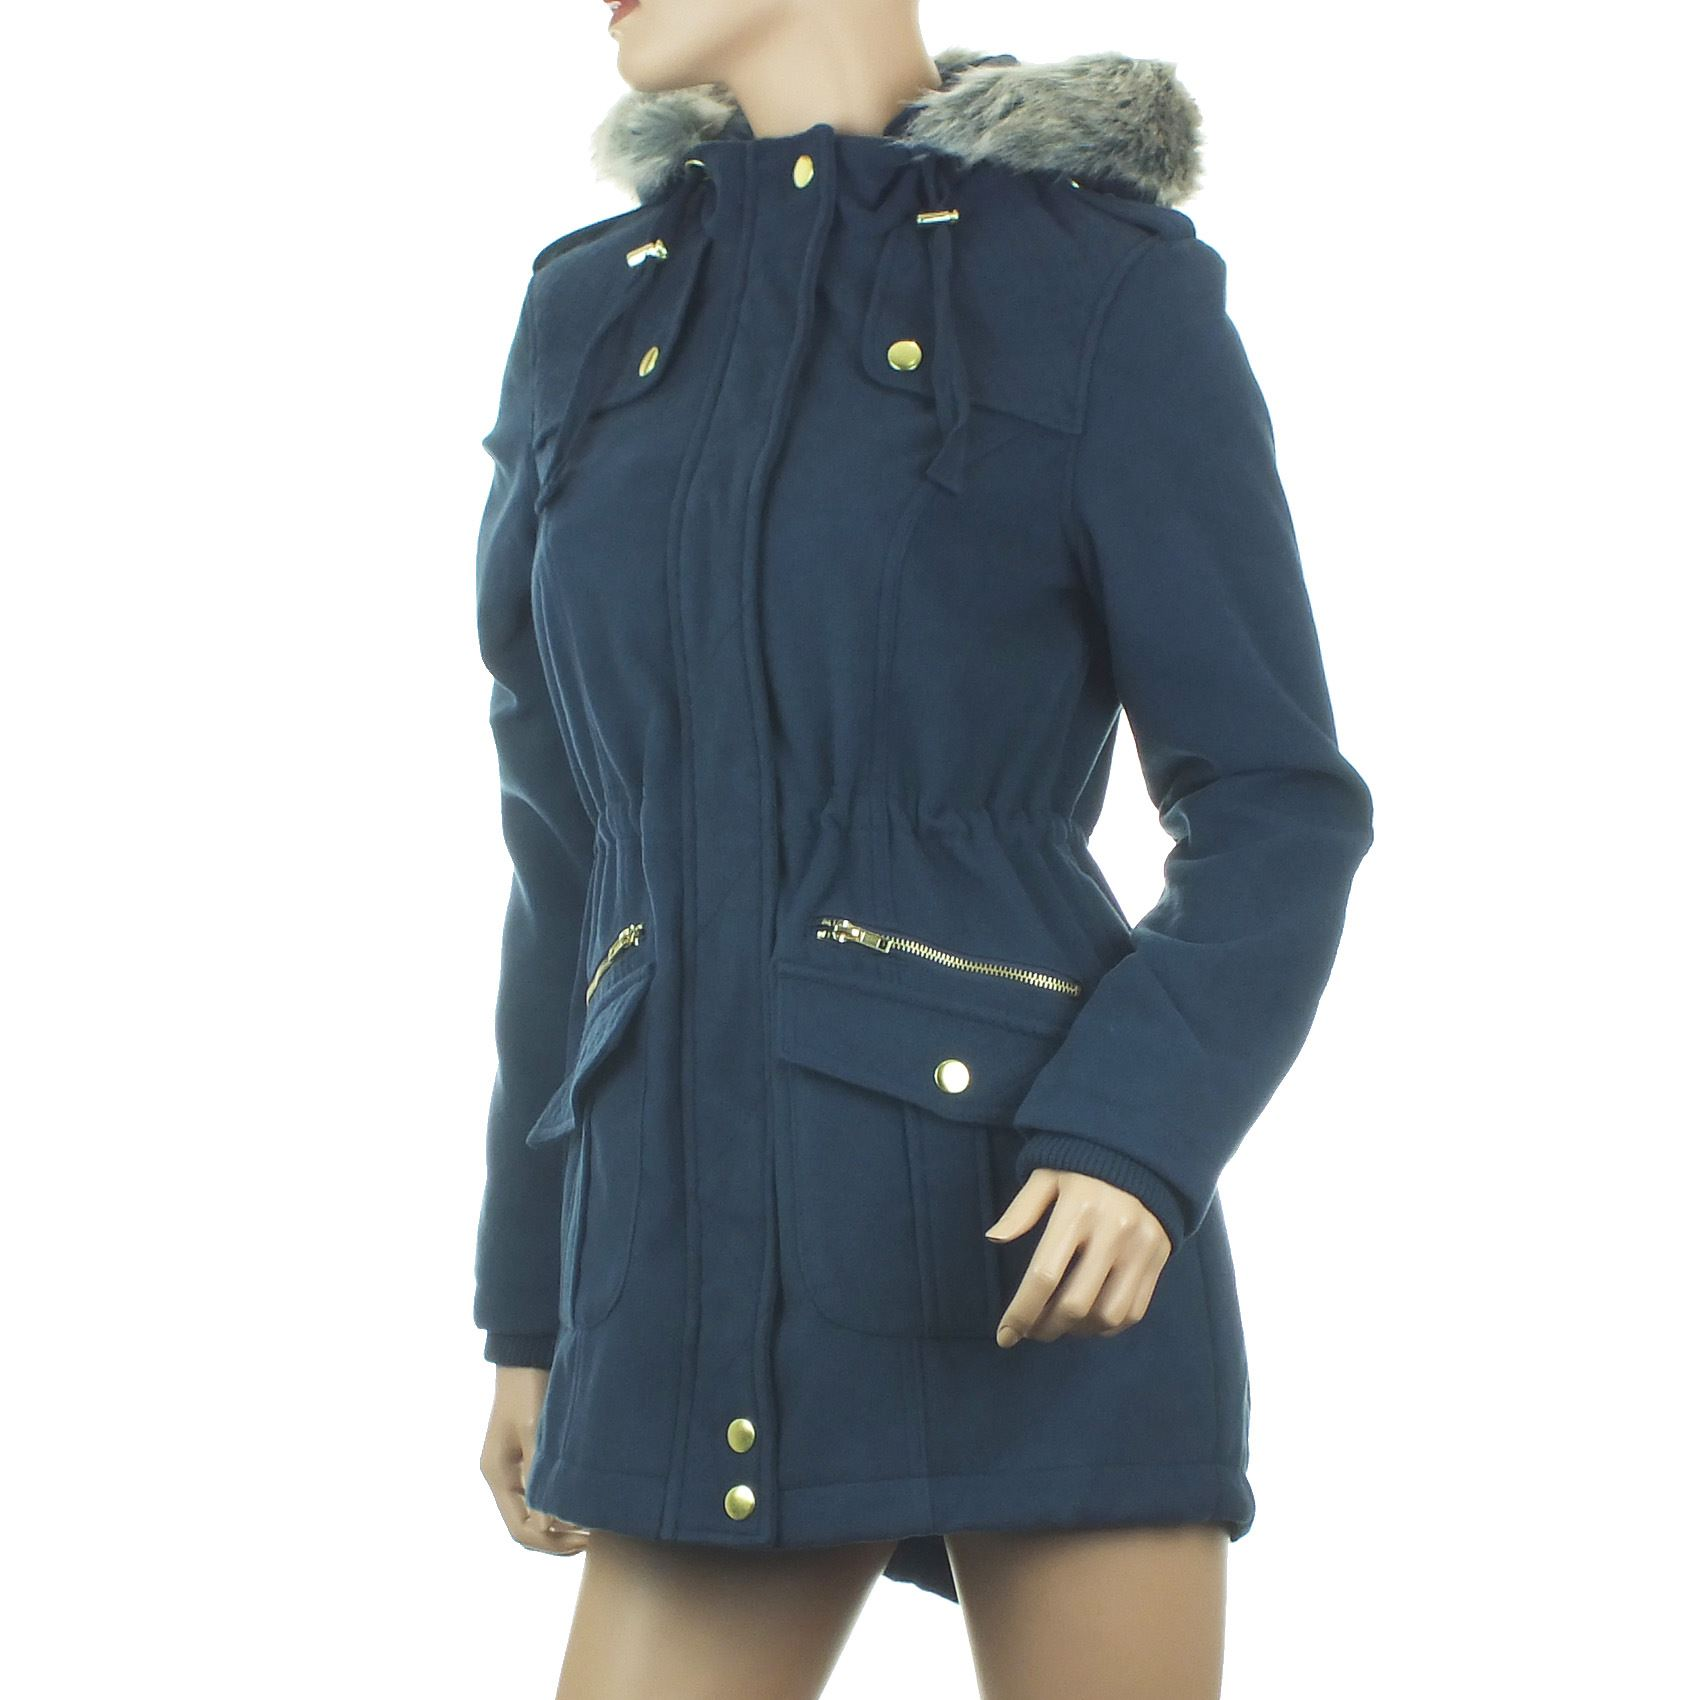 Find great deals on eBay for navy winter jacket. Shop with confidence.